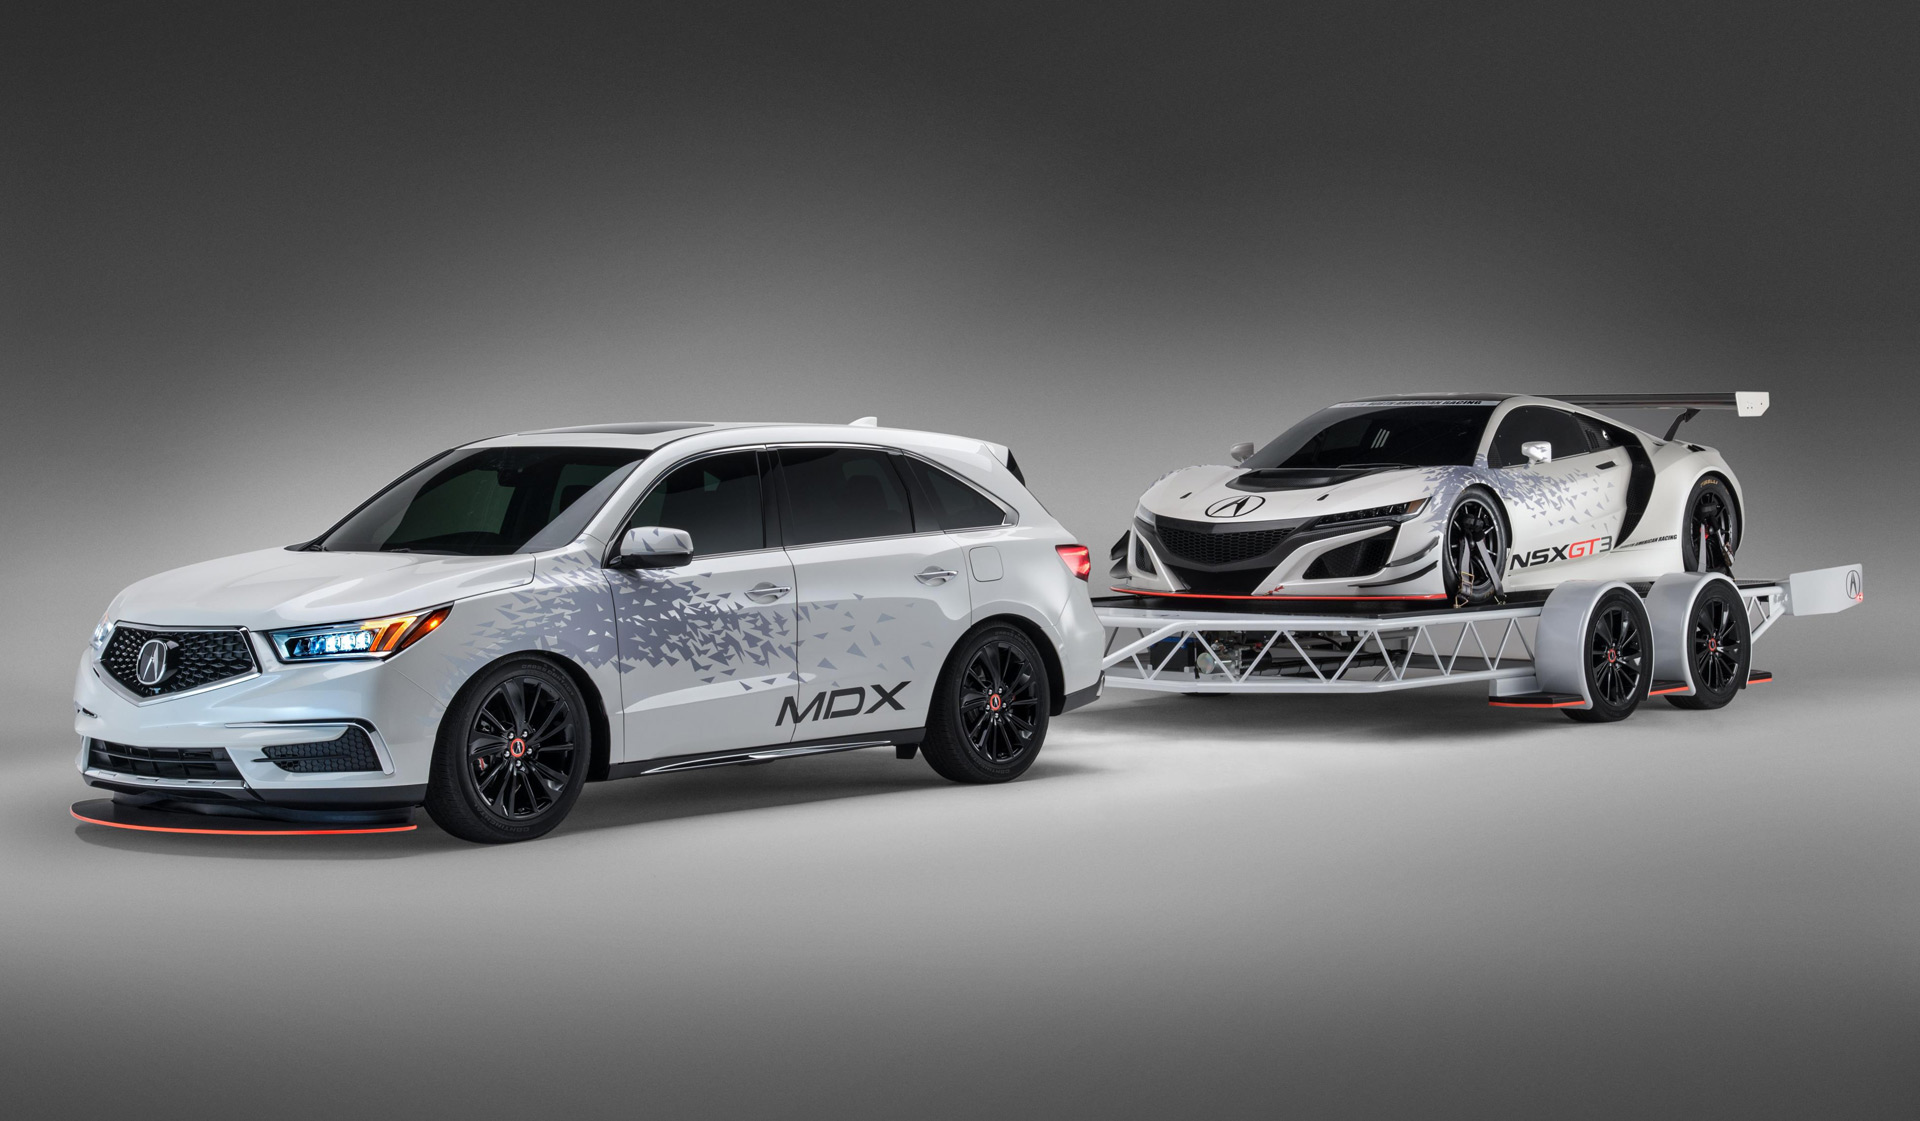 Tricked Out Acura Mdx Towing An Nsx Gt3 To Star In Sema